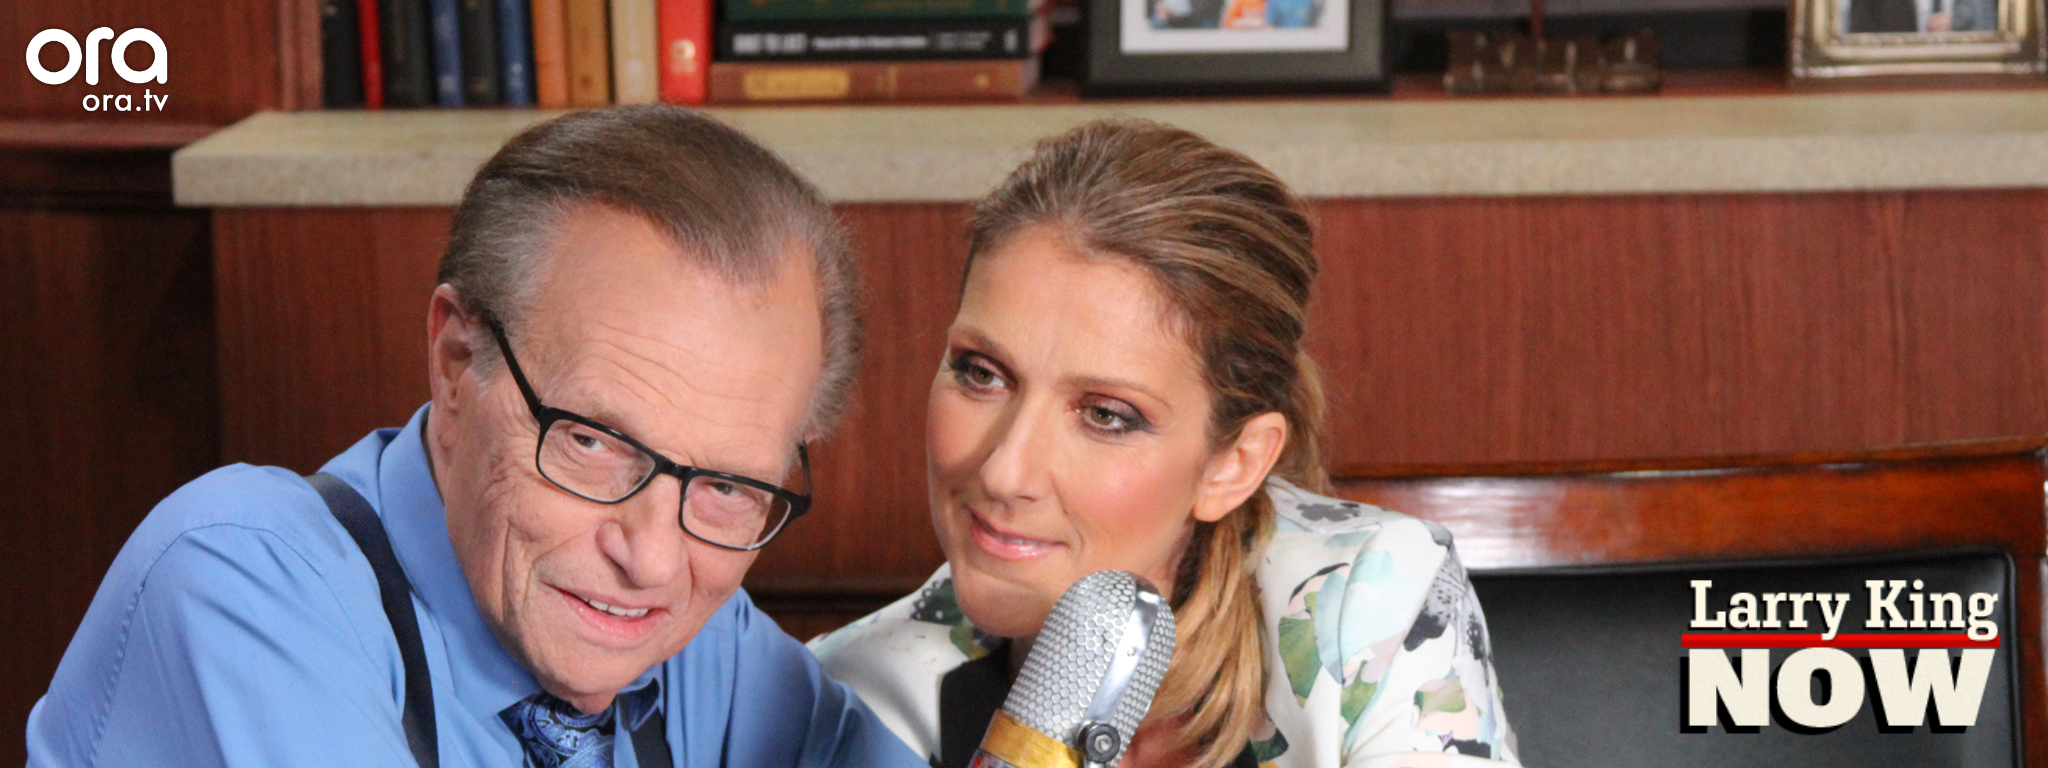 Celine Dion gets interviewed by Larry King